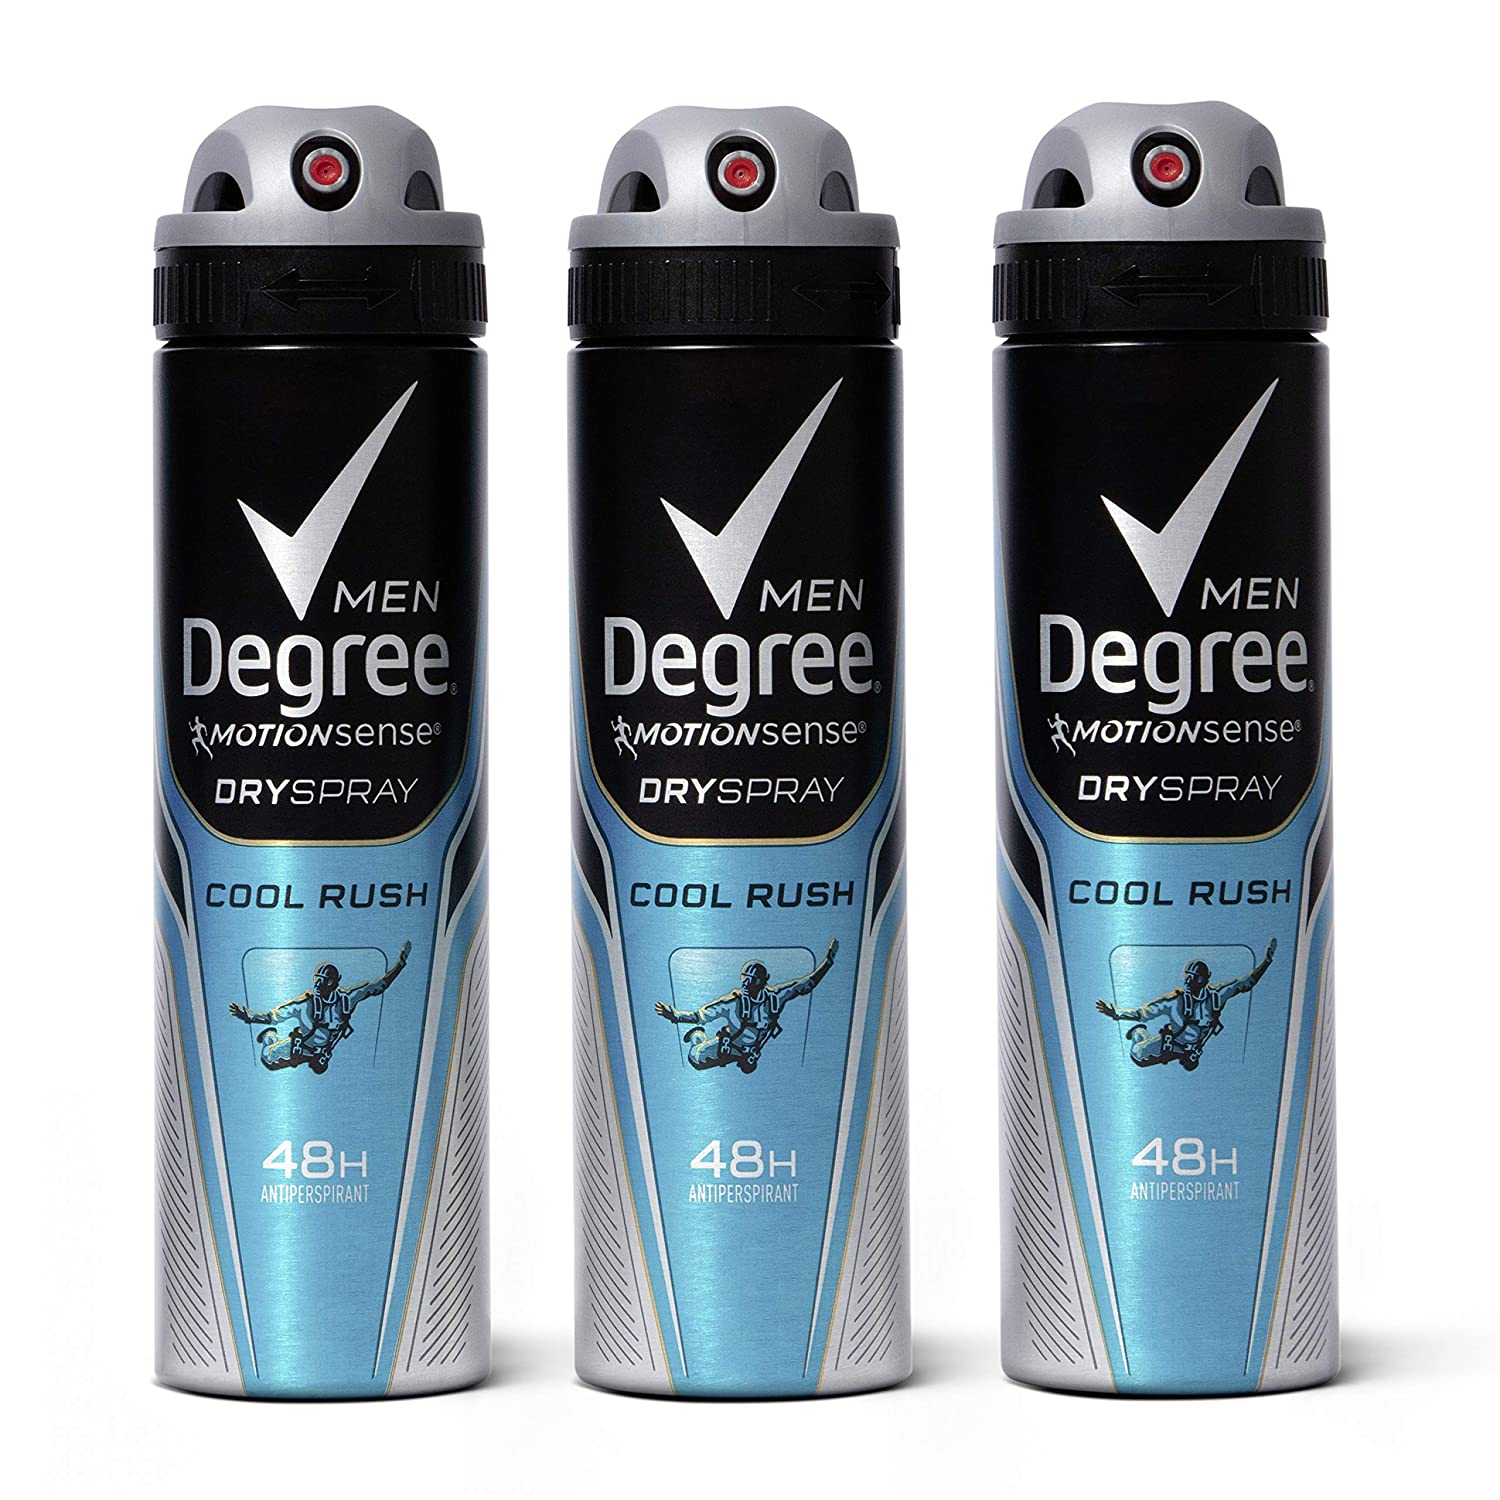 Degree Men Antiperspirant Deodorant Dry Spray Cool Rush With MotionSense for 48 Hour Sweat and Odor Protection 3.8 oz, 3 Count : Beauty